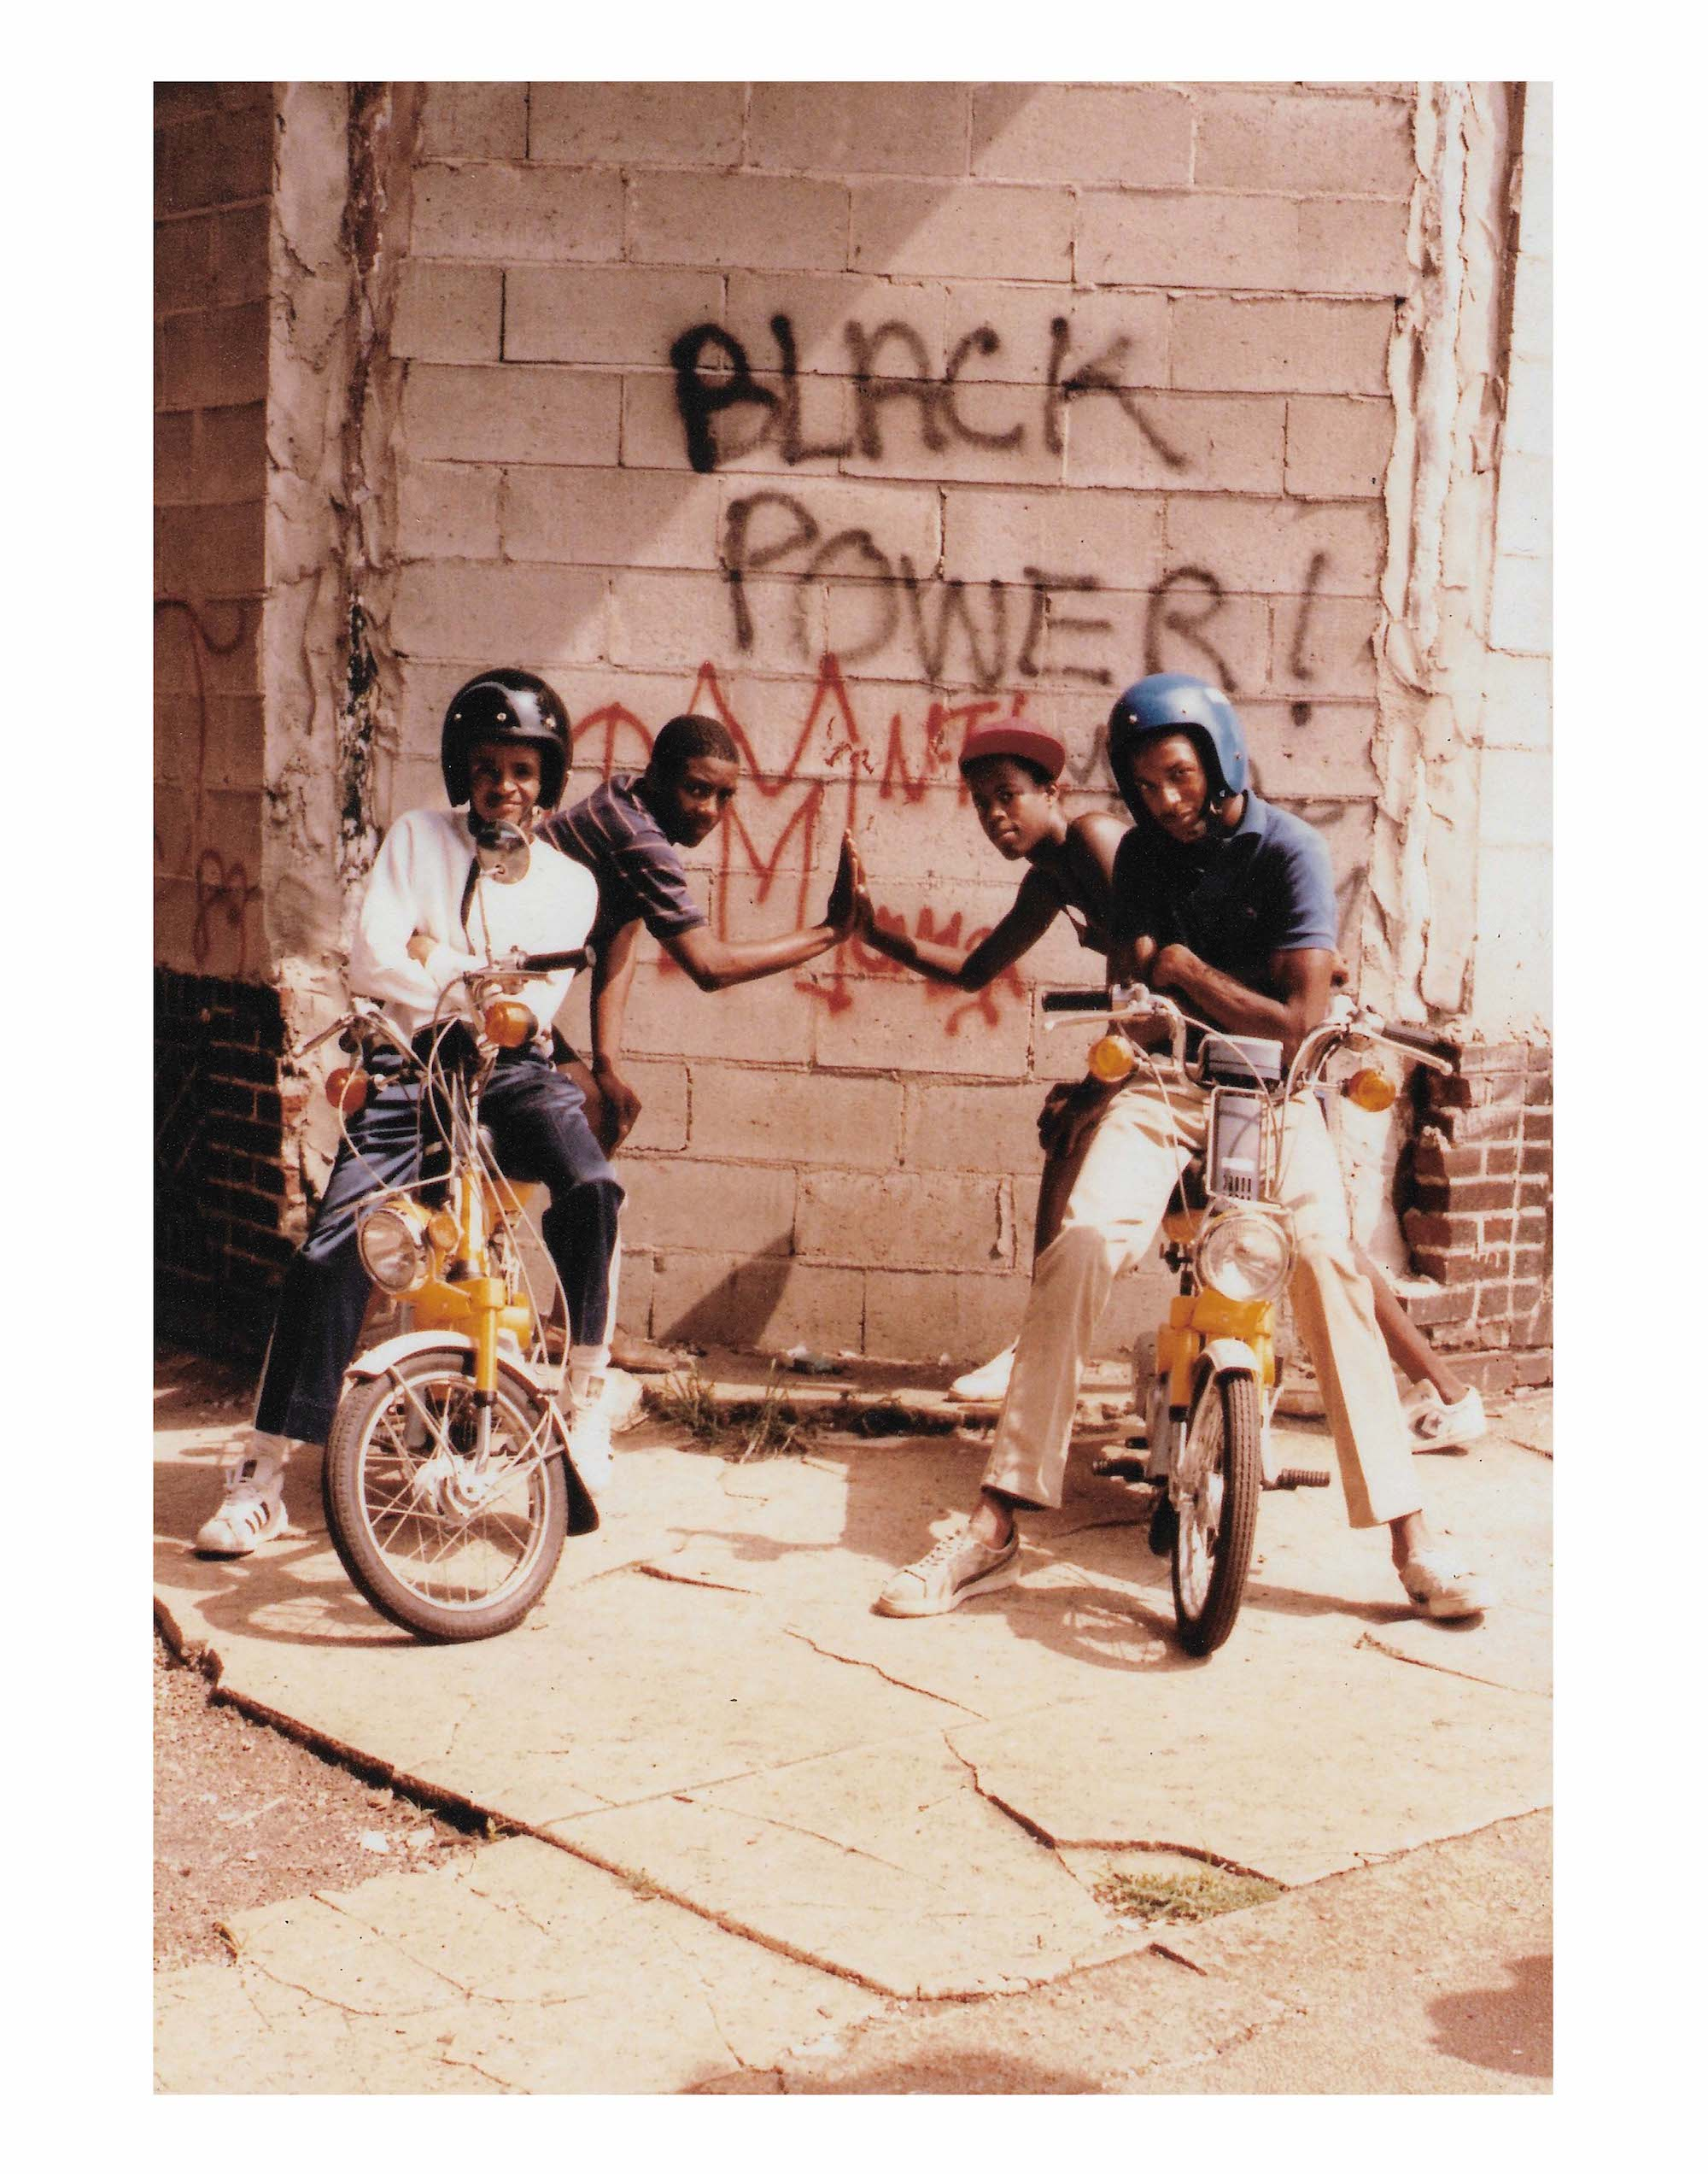 JAMELL BLACKPOWER group of friends on bikes